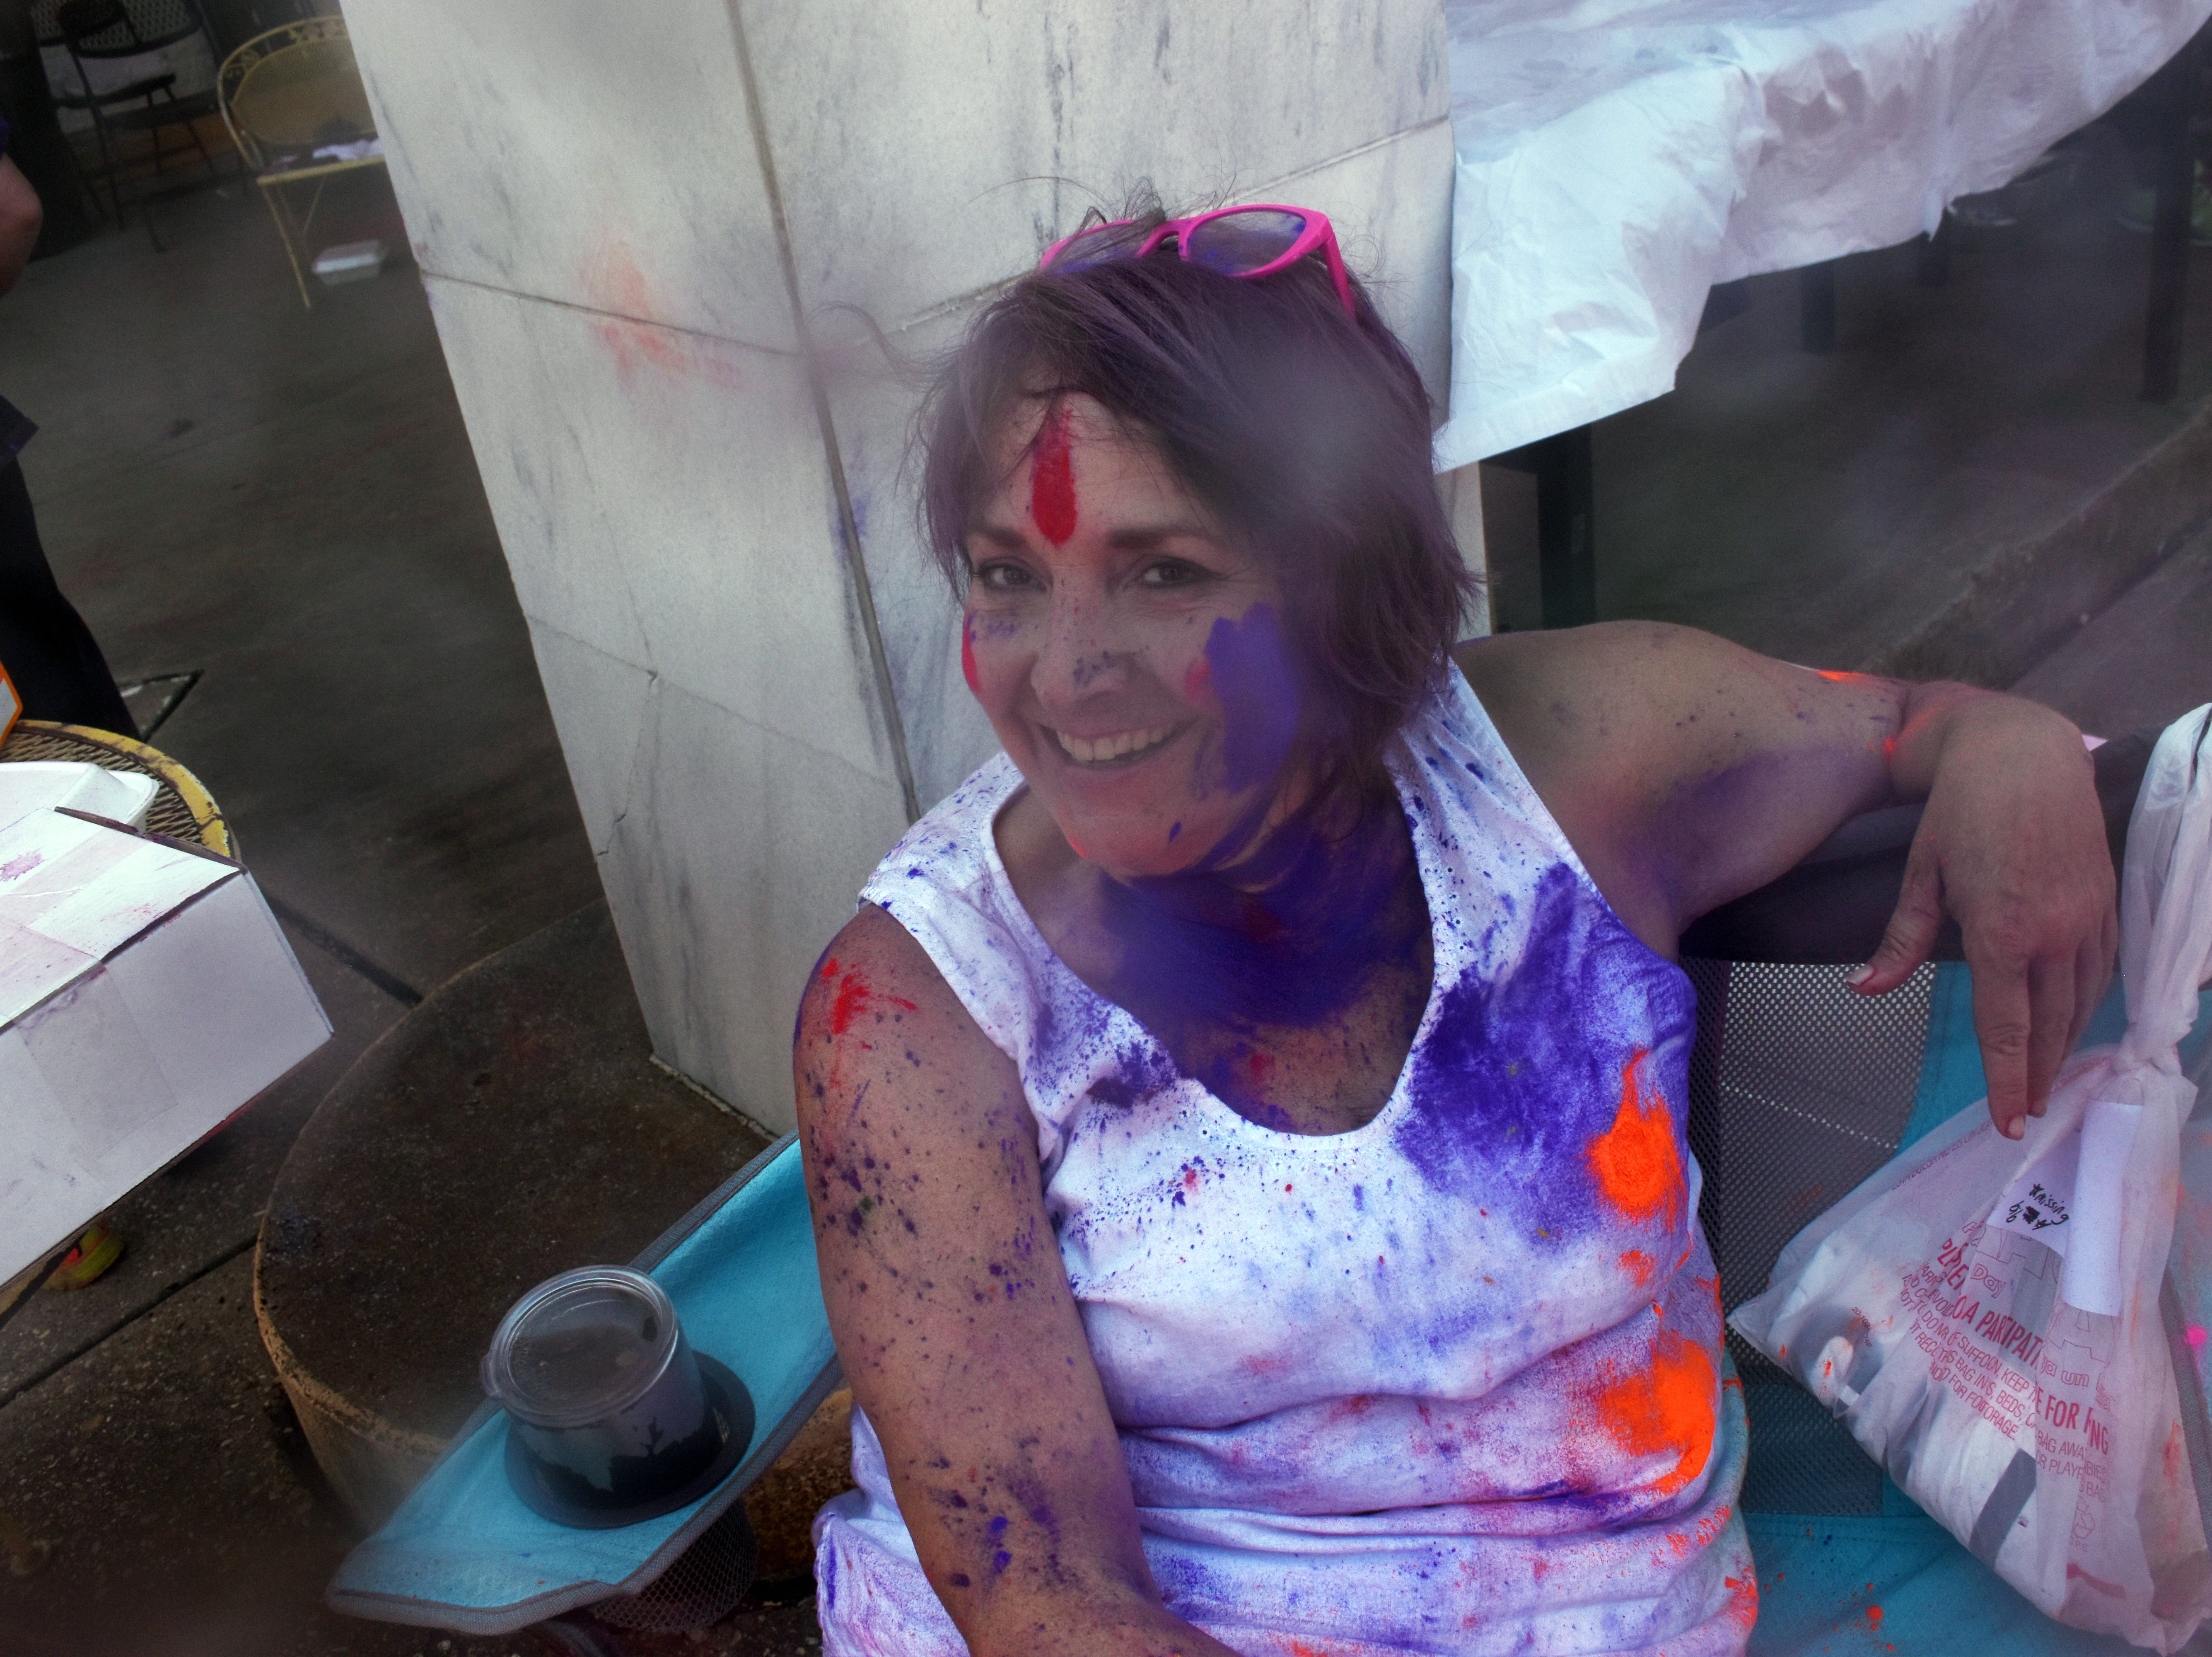 In association with the Children's Advocacy Network, the Cenla India Association hosted the eighth annual Holi-Fest 2019 - the Festival of Colors - in downtown Alexandria near Tamp & Grind Coffee House on 4th Street on Saturday, April 27, 2019. A 4K run and walk were also held. Plate lunches of Indian cuisine were also sold. Proceeds benefit the Children's Advocacy Network which has the goal that every child lives in a safe, permanent home, free of abuse and neglect. The event, in which participants toss powdered color at each other, has become one of Alexandria's popularevents.Holi-Fest originated in Northern India about 3,000 years ago as a celebration to welcome the spring. Festival-goers toss powdered colors at each other as they celebrate.